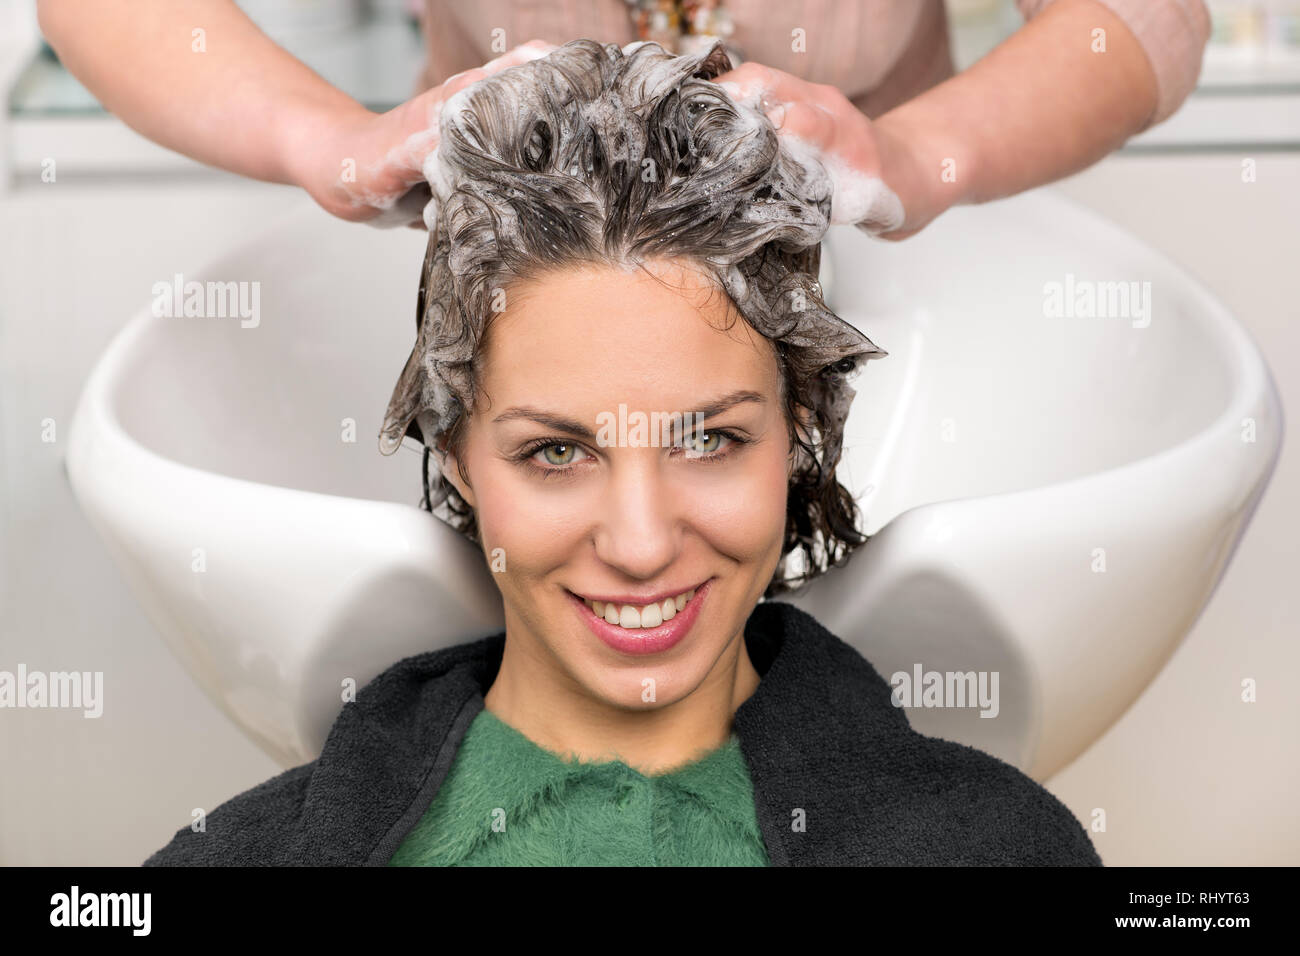 Cute young girl having her hair washed with shampoo by the hands of professional hairdresser at beauty salon, leaning back on white ceramic hair wash  - Stock Image